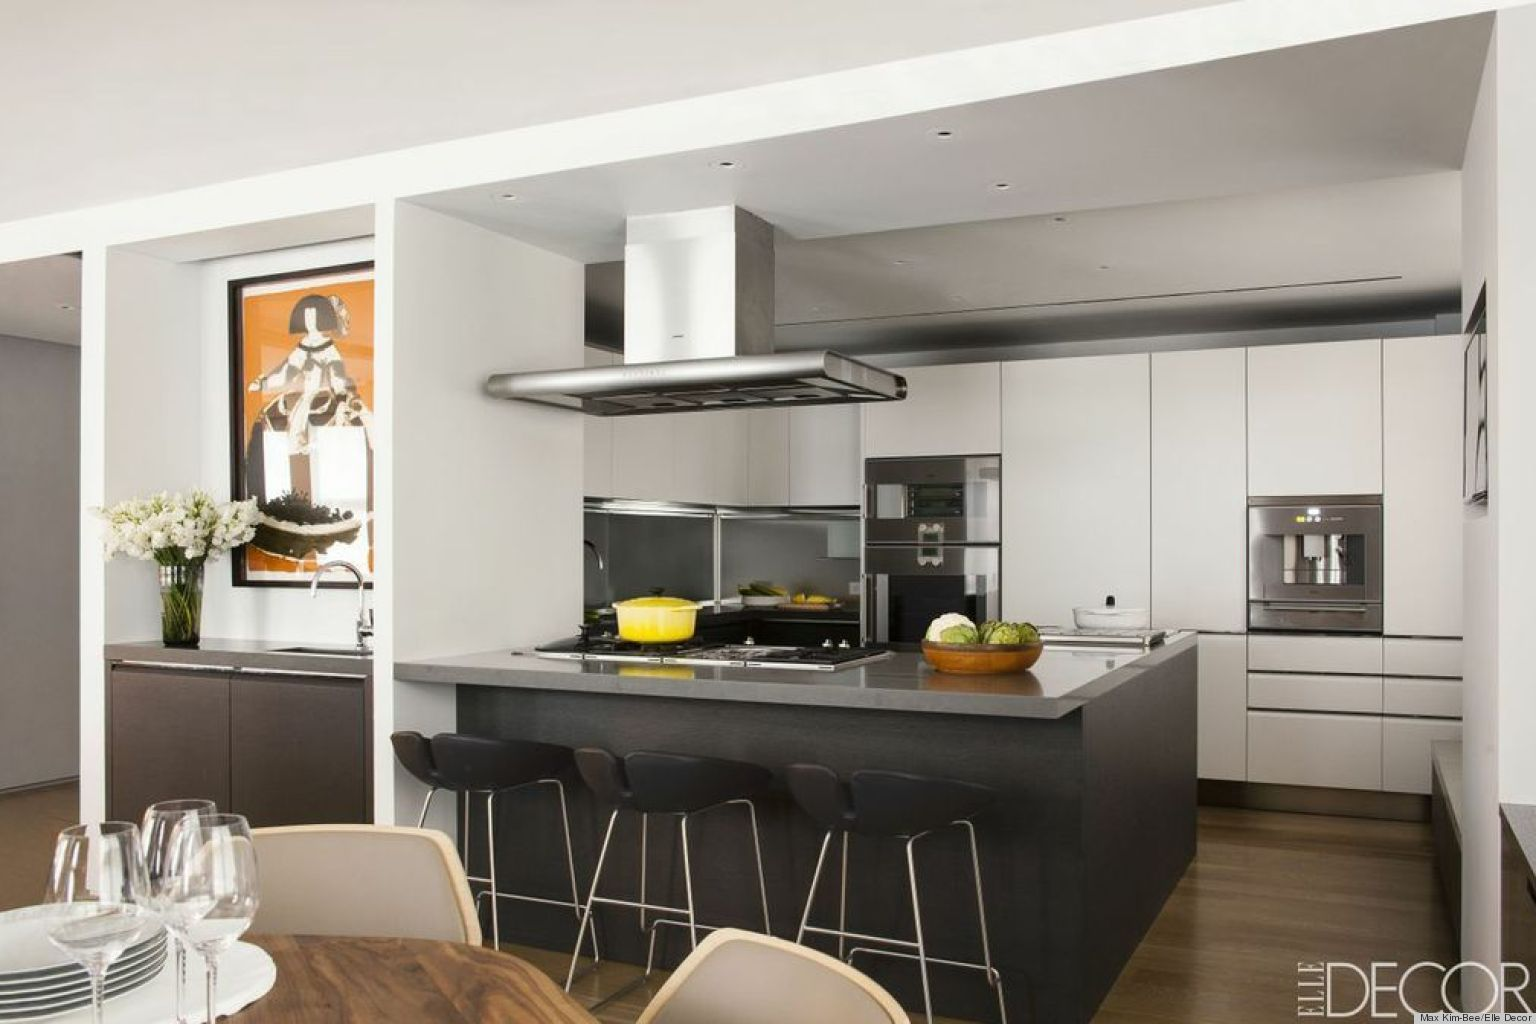 Inside Chef Daniel Boulud 39 S Stunning Kitchen Featured In